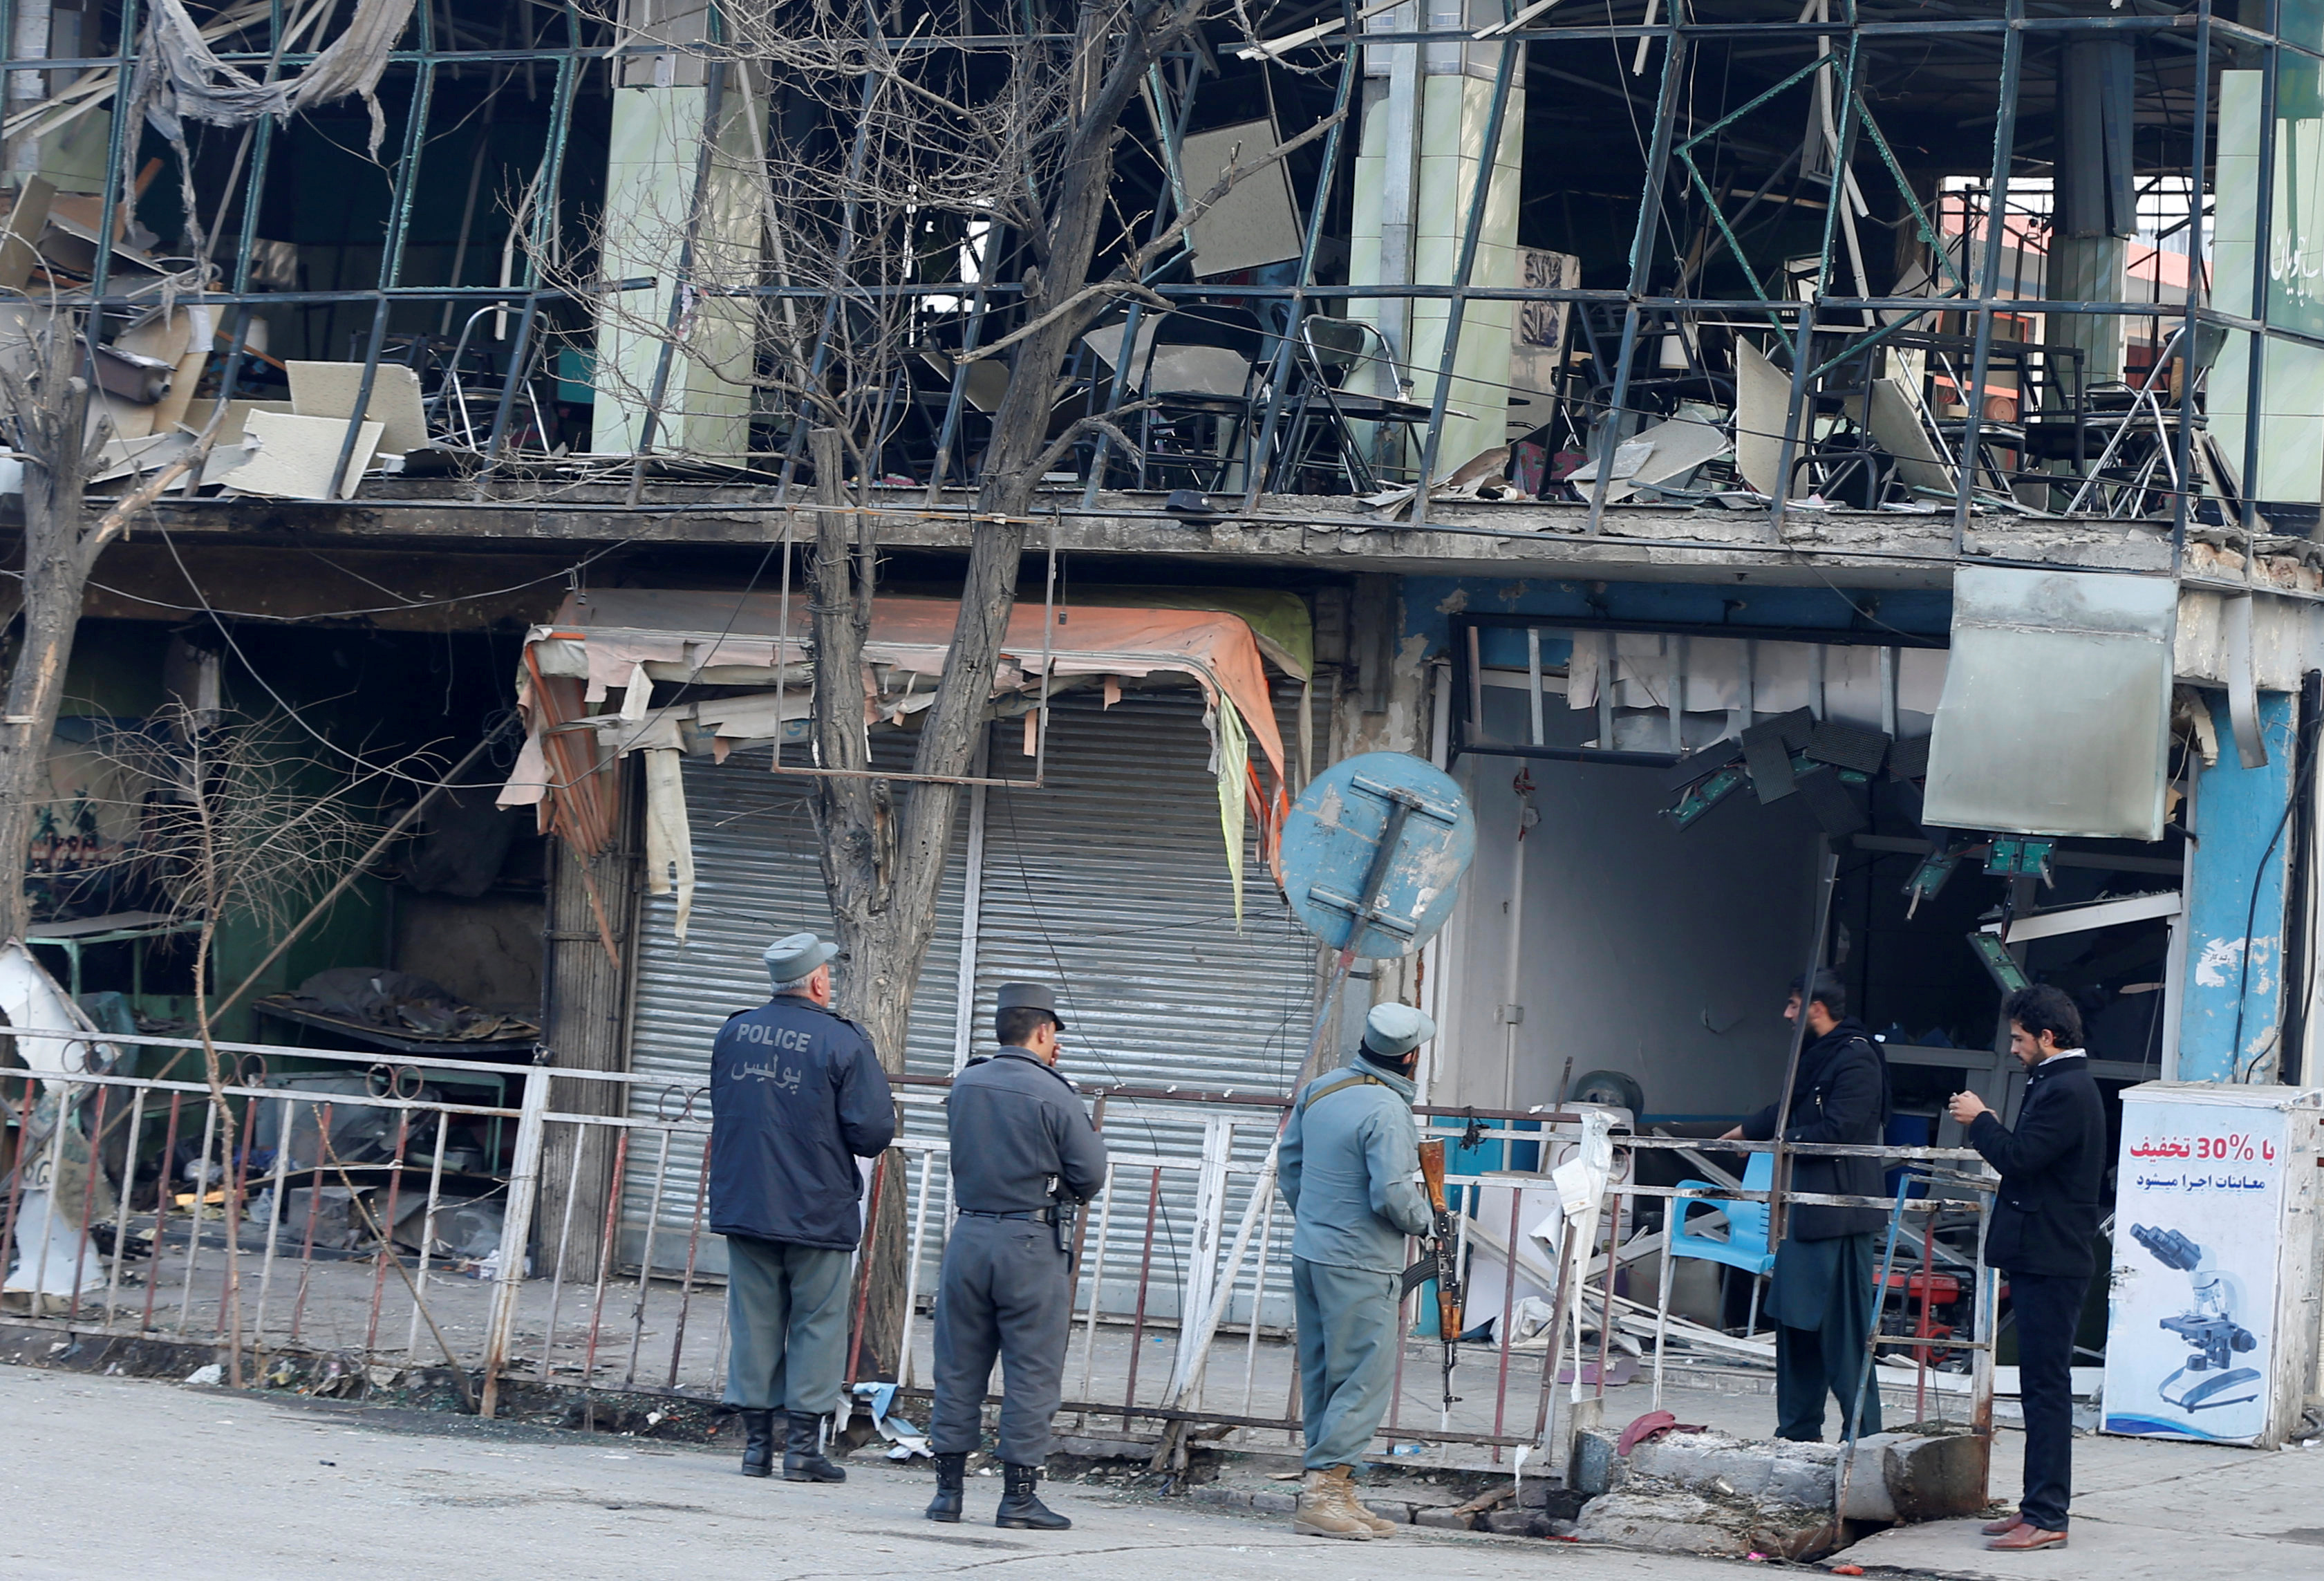 Afghan policemen inspect the site of a bomb attack in Kabul, Afghanistan, Jan.28, 2018. On Saturday, a car bomb ripped through a crowded area outside a government building, killing or wounding hundreds.